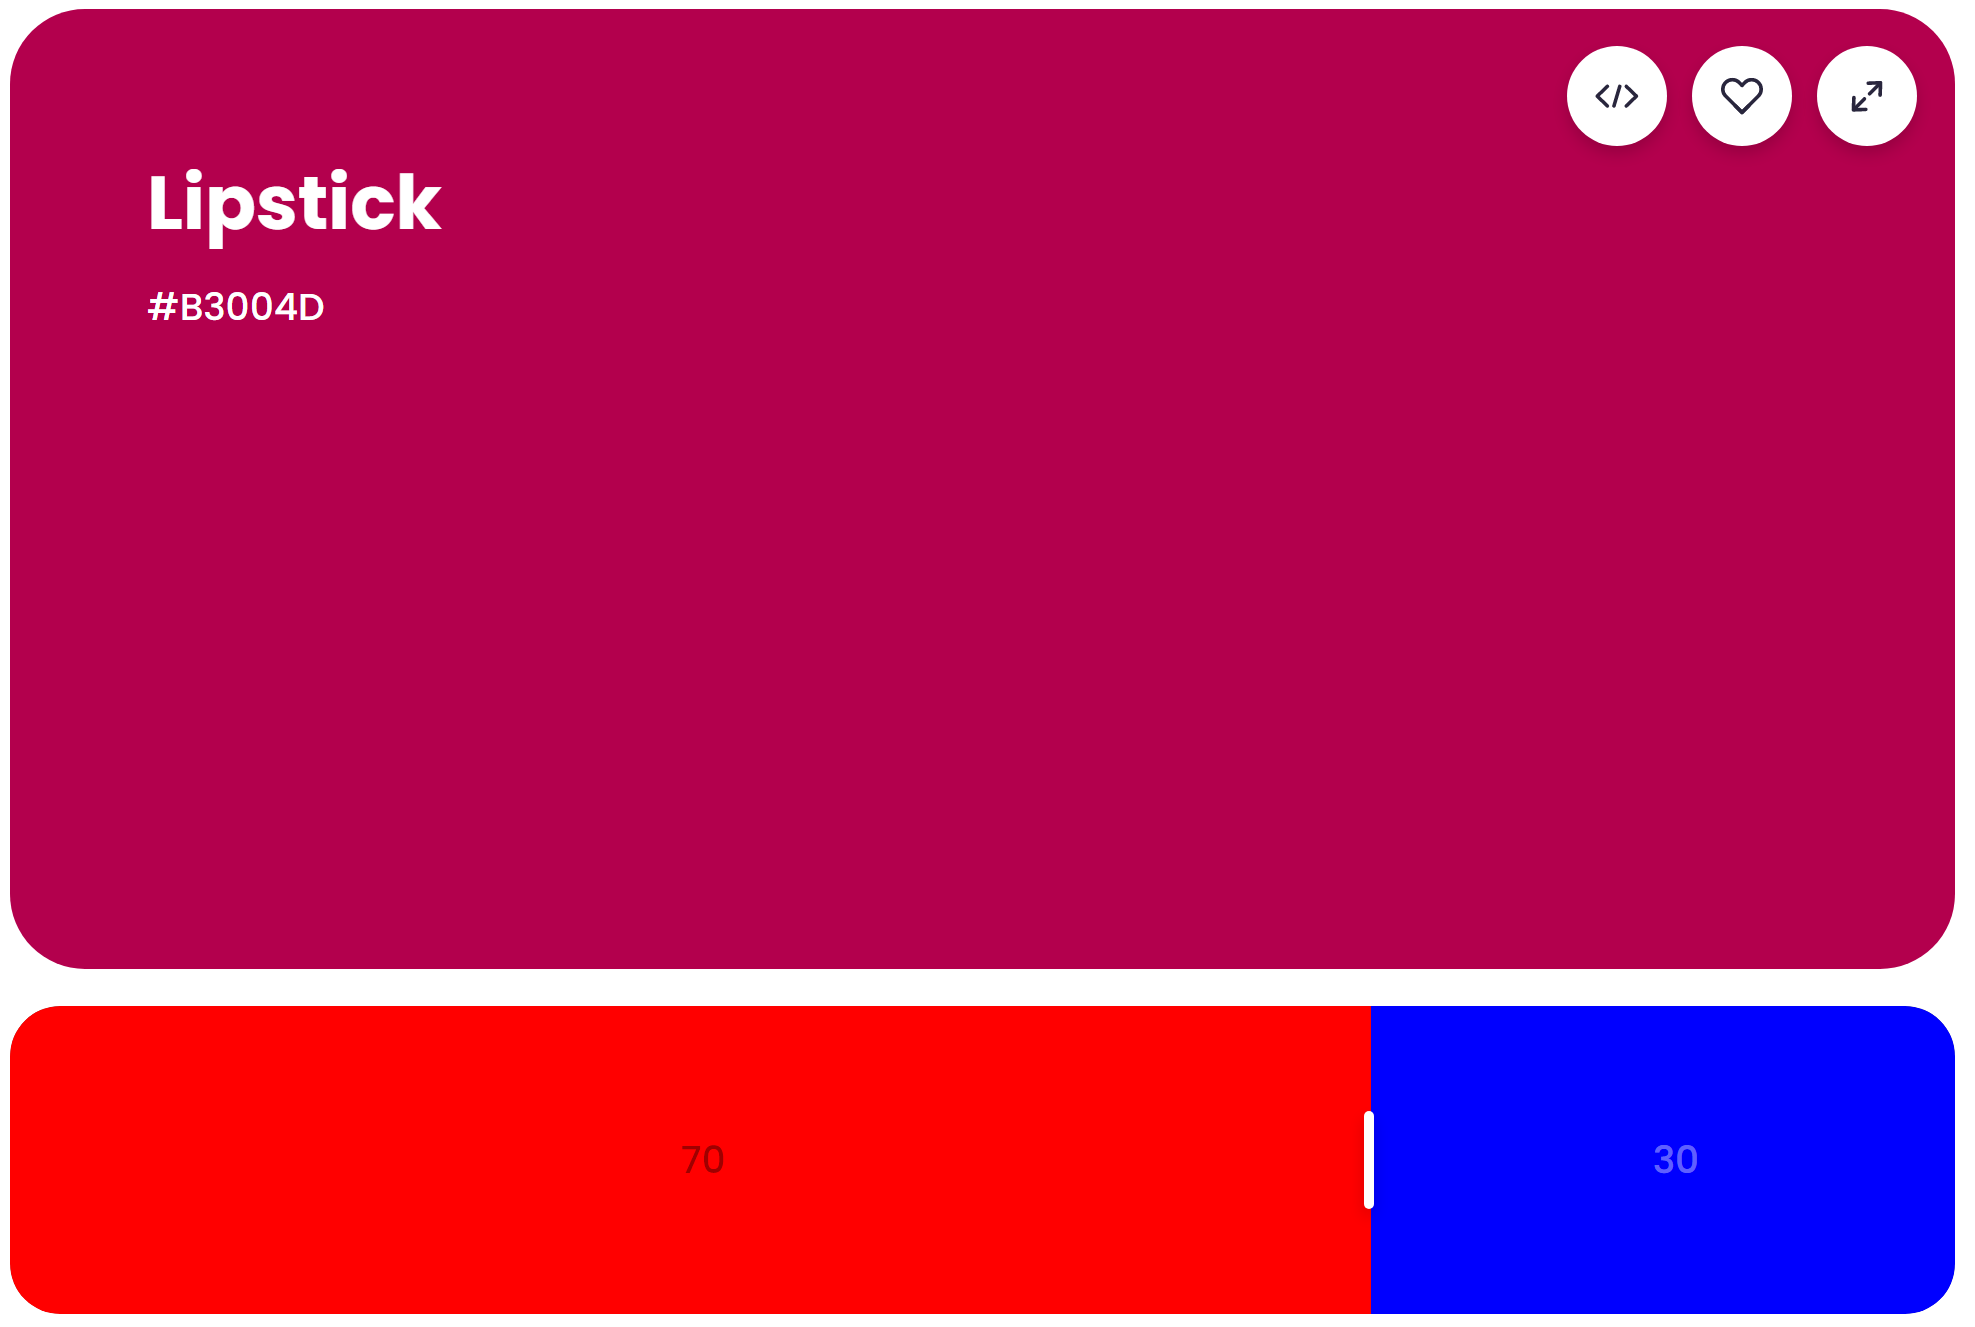 What Does Red and Blue Make? Mixing result of 70% red and 30% blue: Lipstick